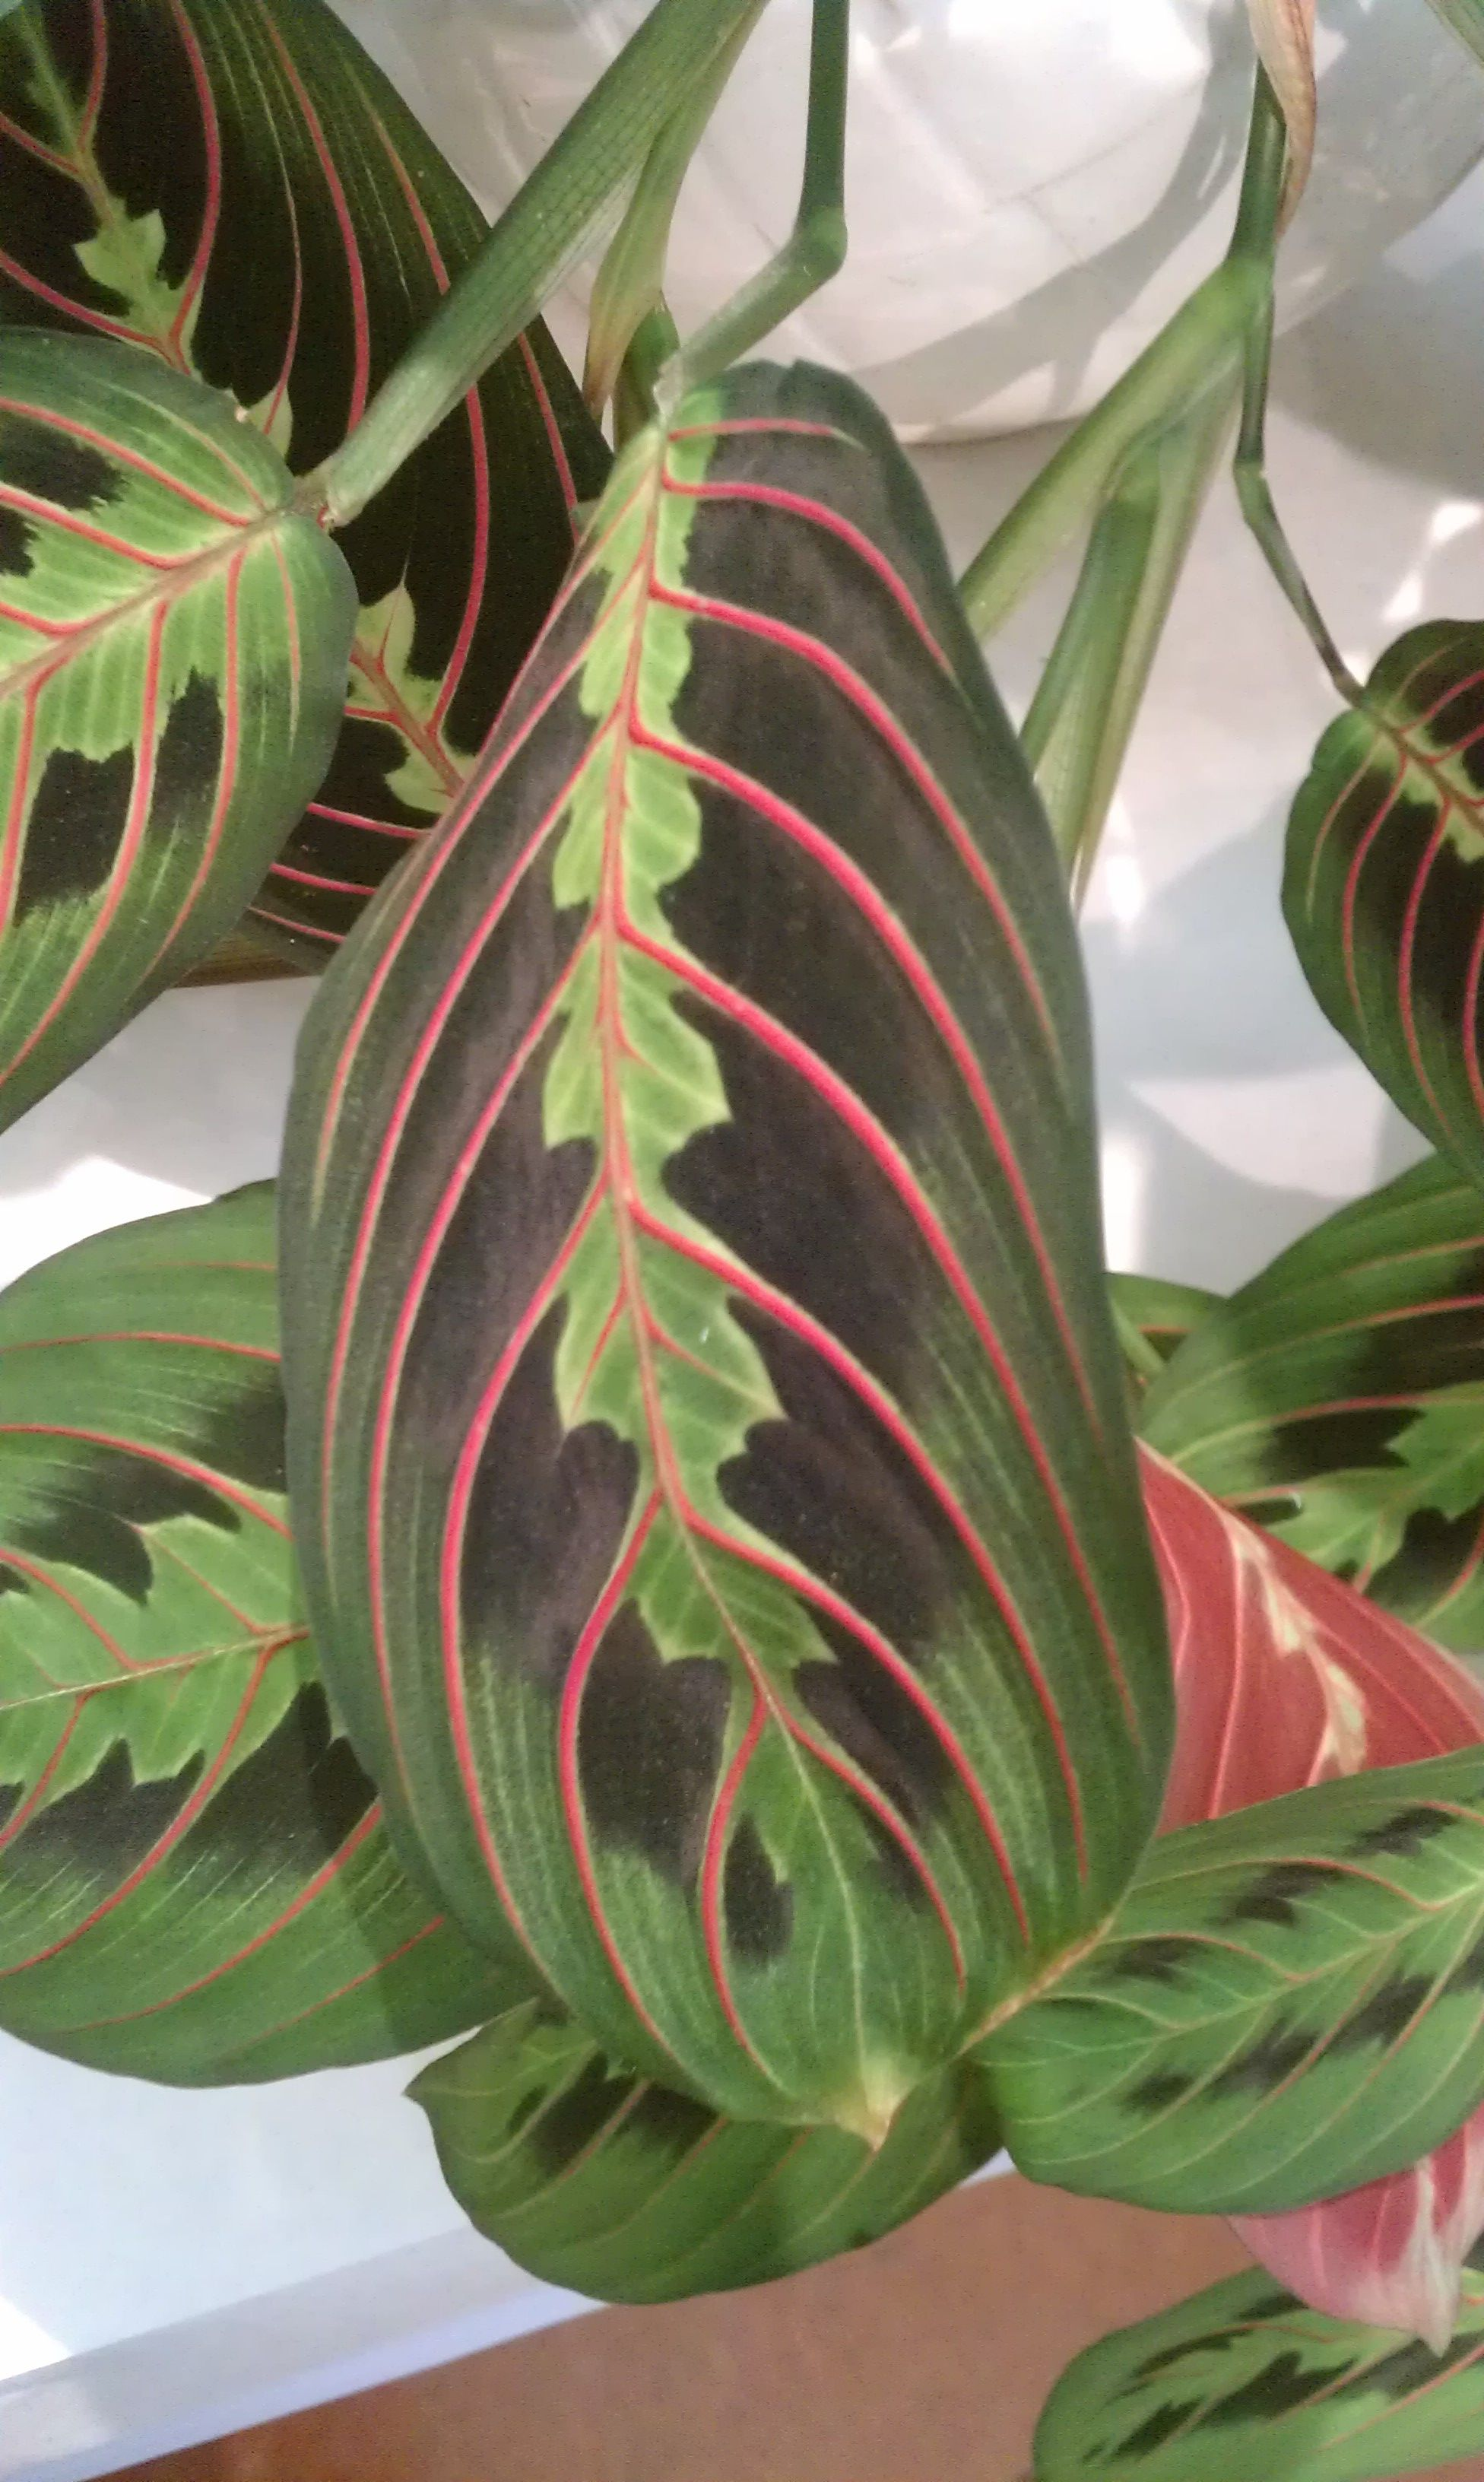 Houseplants Folds, As If In Prayer, At Night